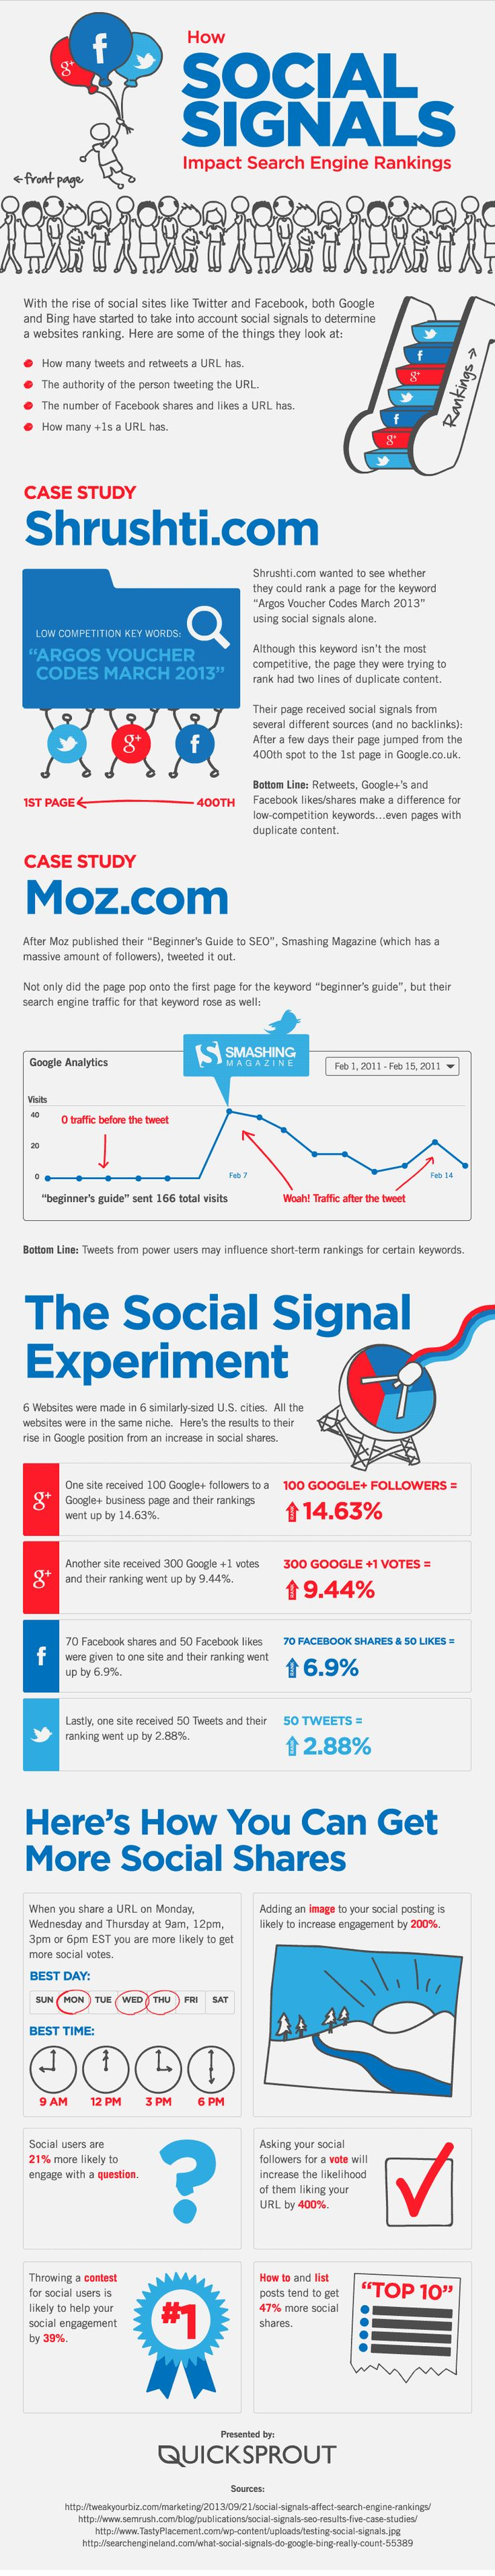 How Social Signals Impact Search Engine Rankings - Via Pmesocial